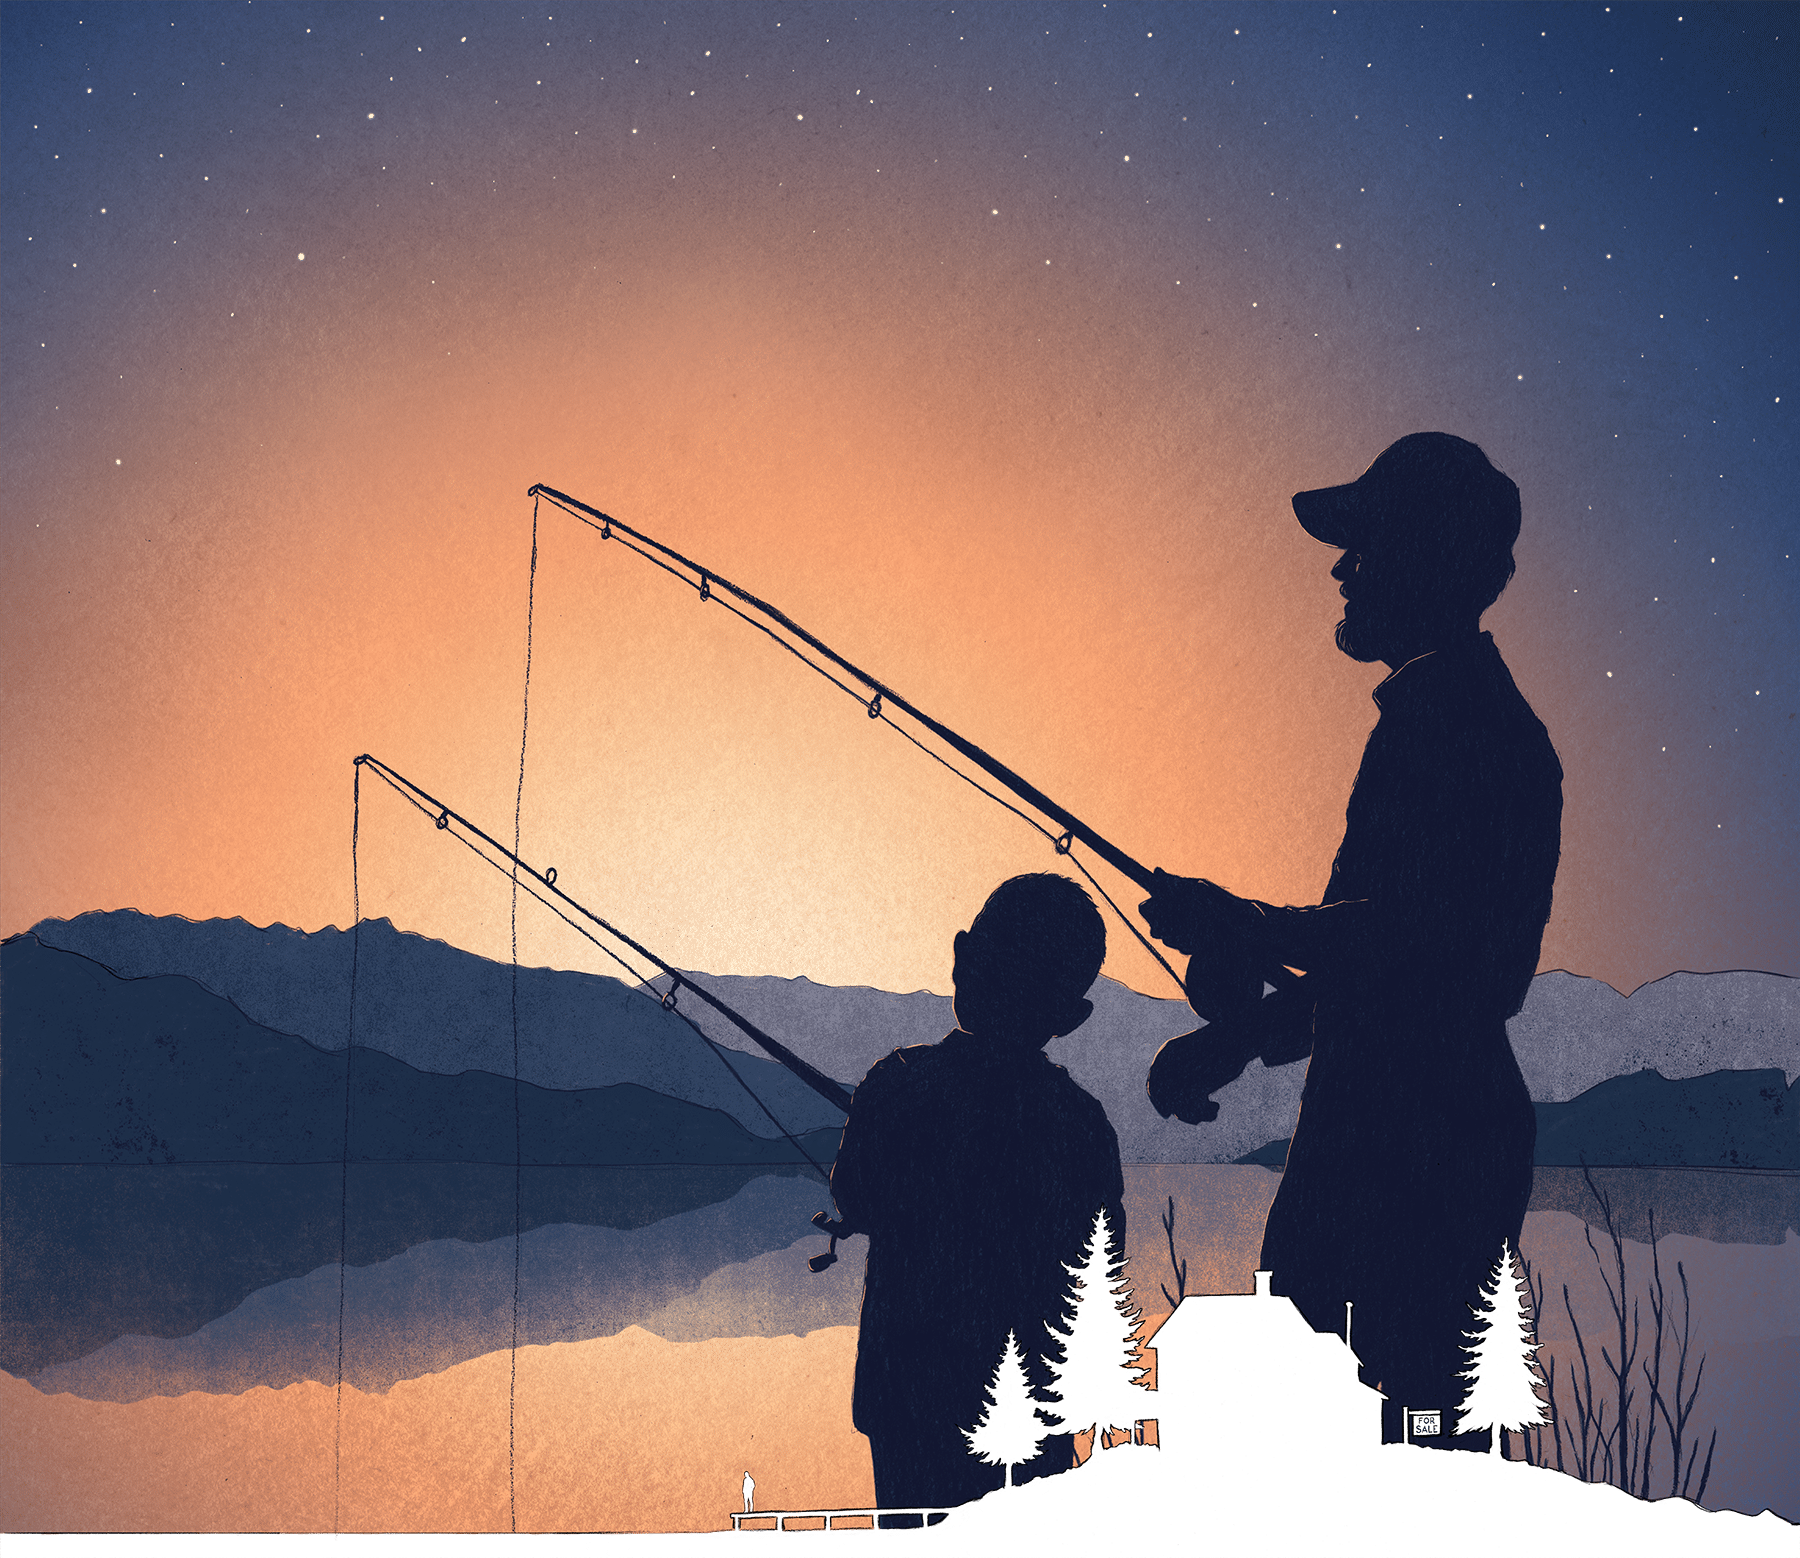 silhouette of man and child fishing